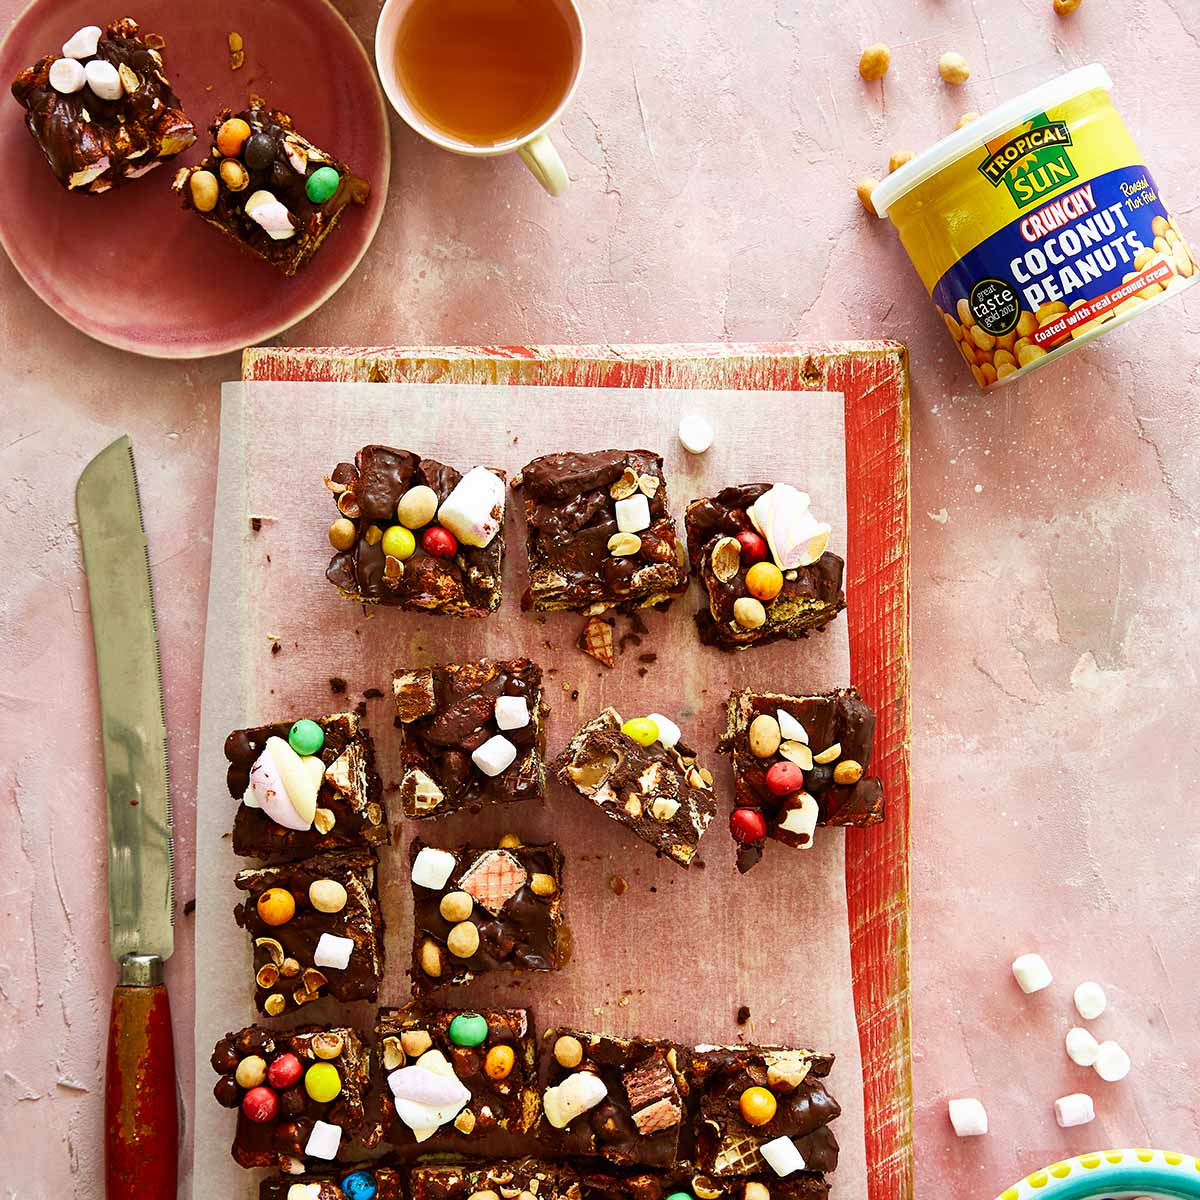 Izy Hossack Coconut Peanut Rocky Road Recipe_Tropical Sun